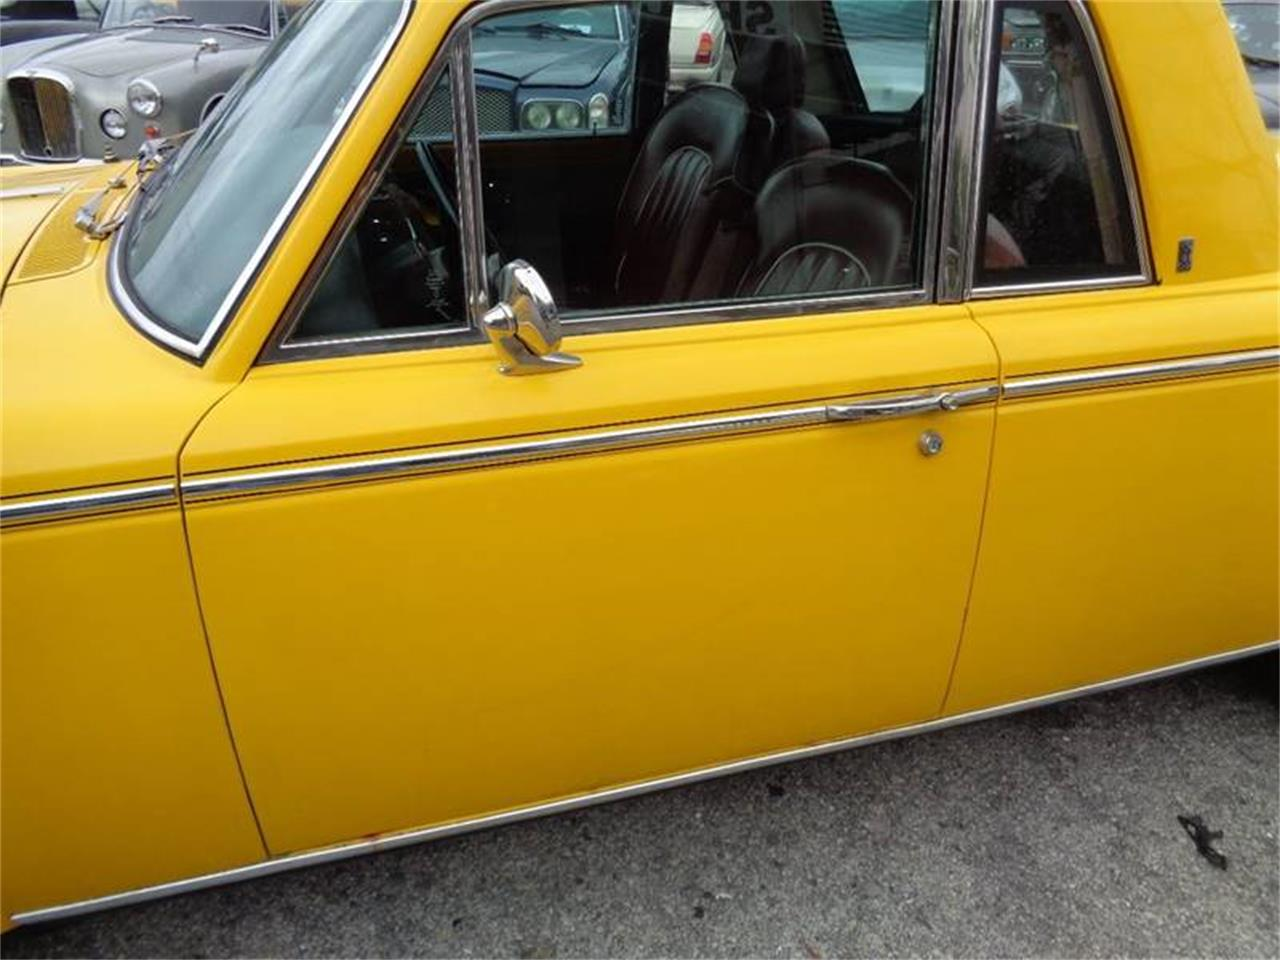 1973 Rolls-Royce Silver Shadow for sale in Fort Lauderdale, FL – photo 4